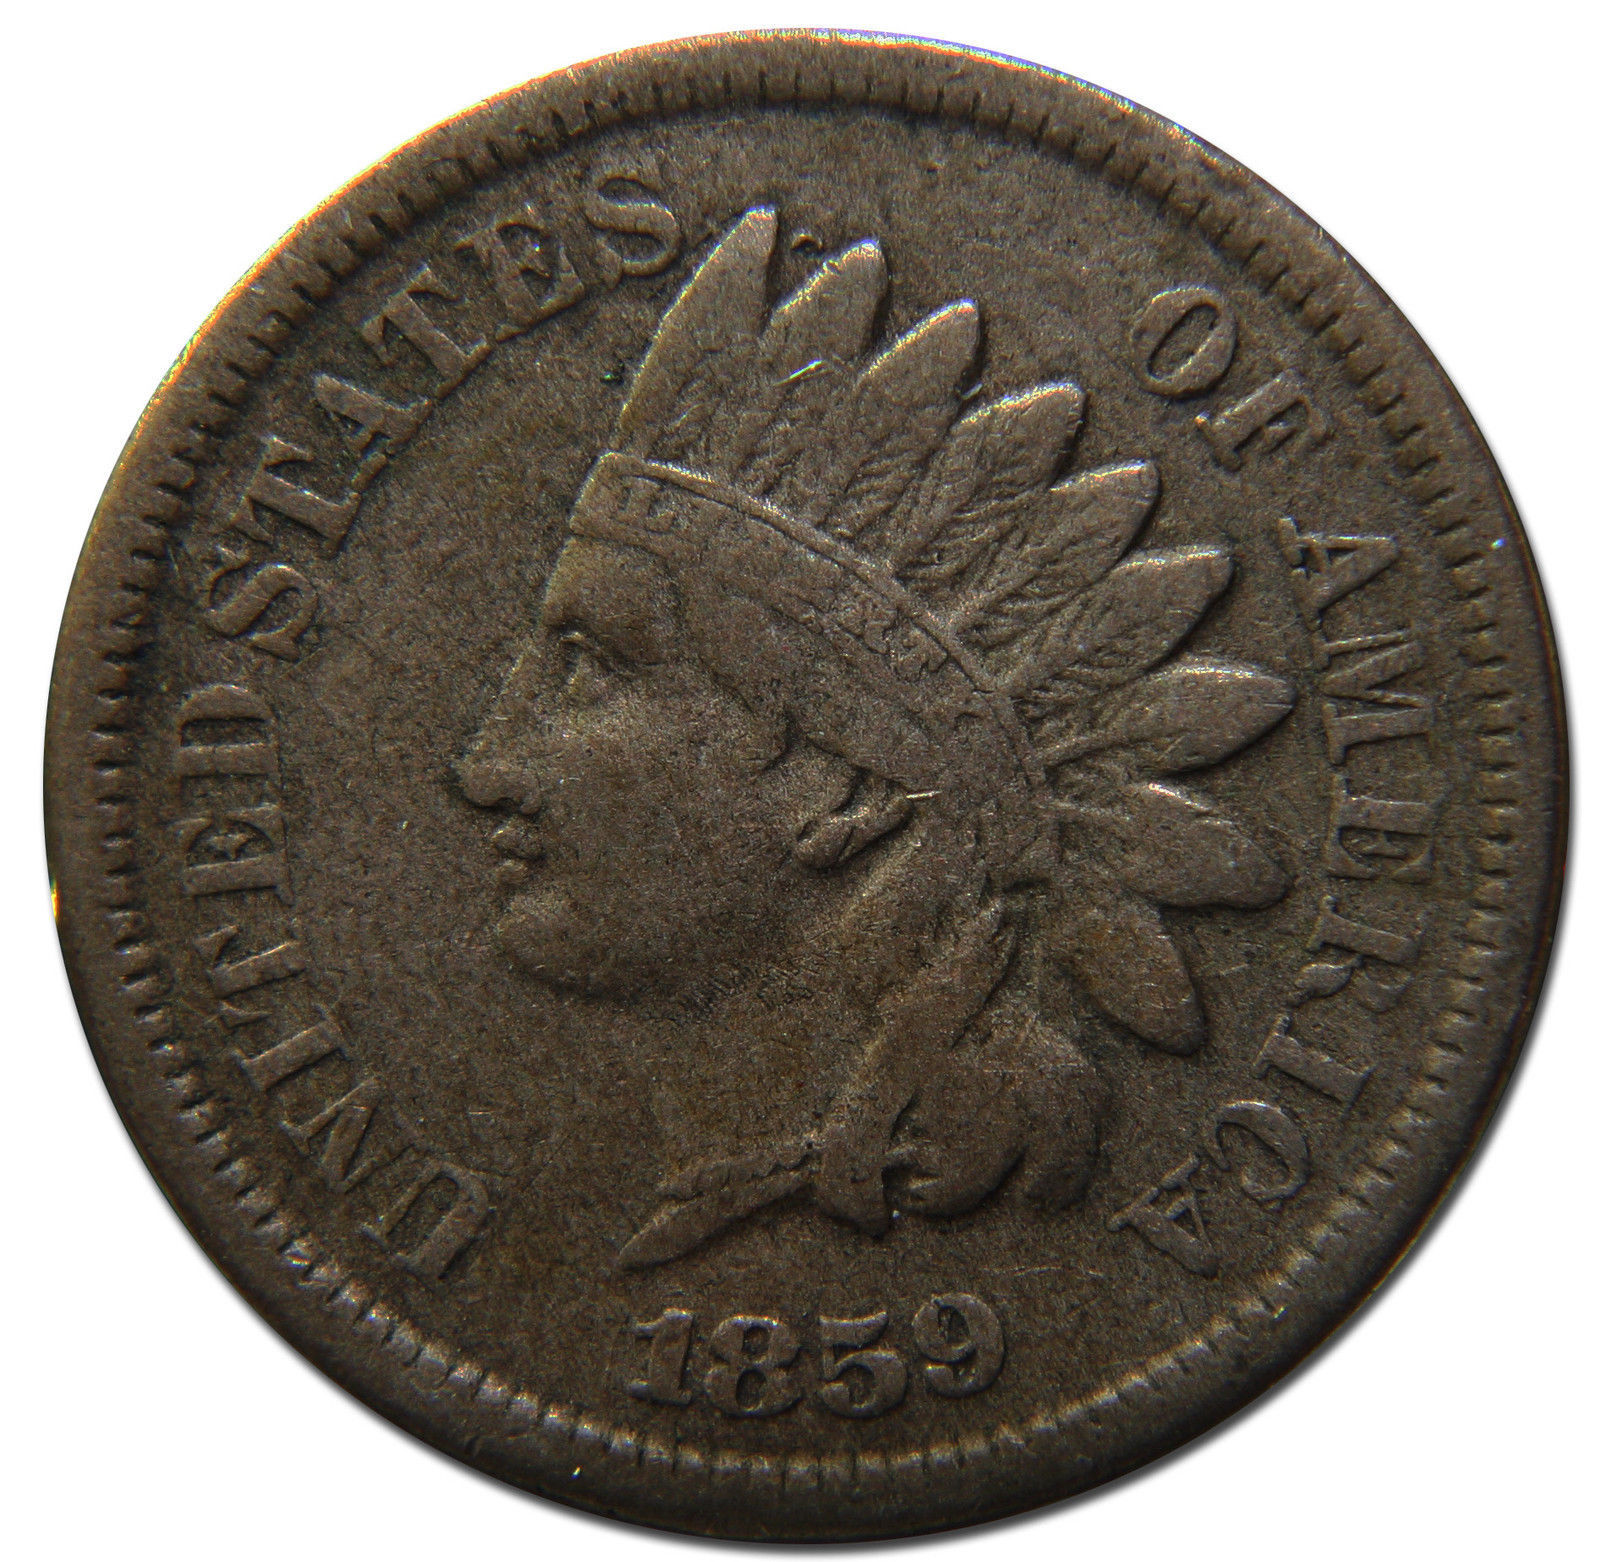 1859 One Cent Indian Head Penny Coin Lot# MZ 3111